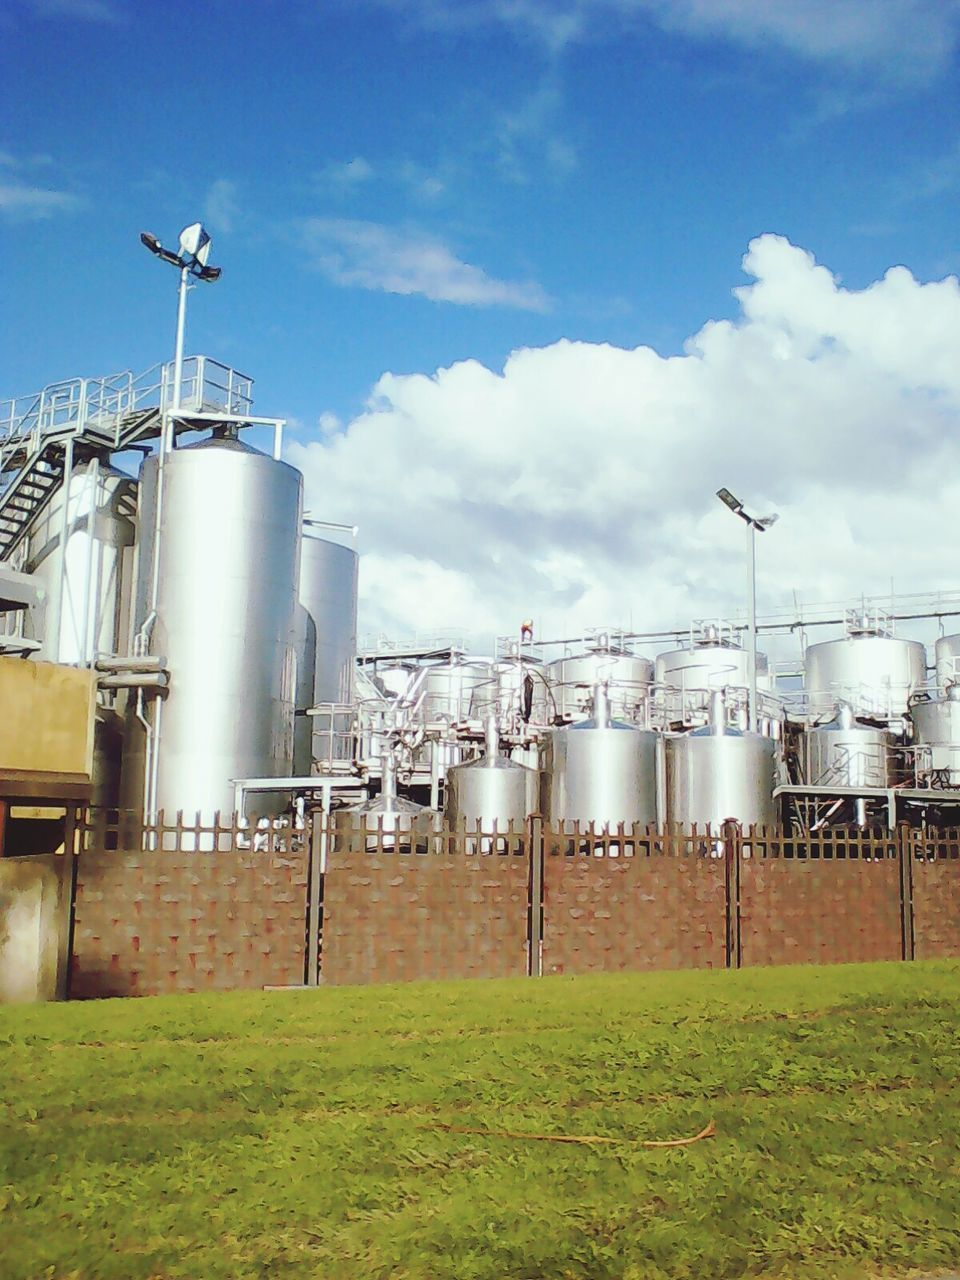 sky, storage tank, no people, industry, factory, day, fuel and power generation, outdoors, grass